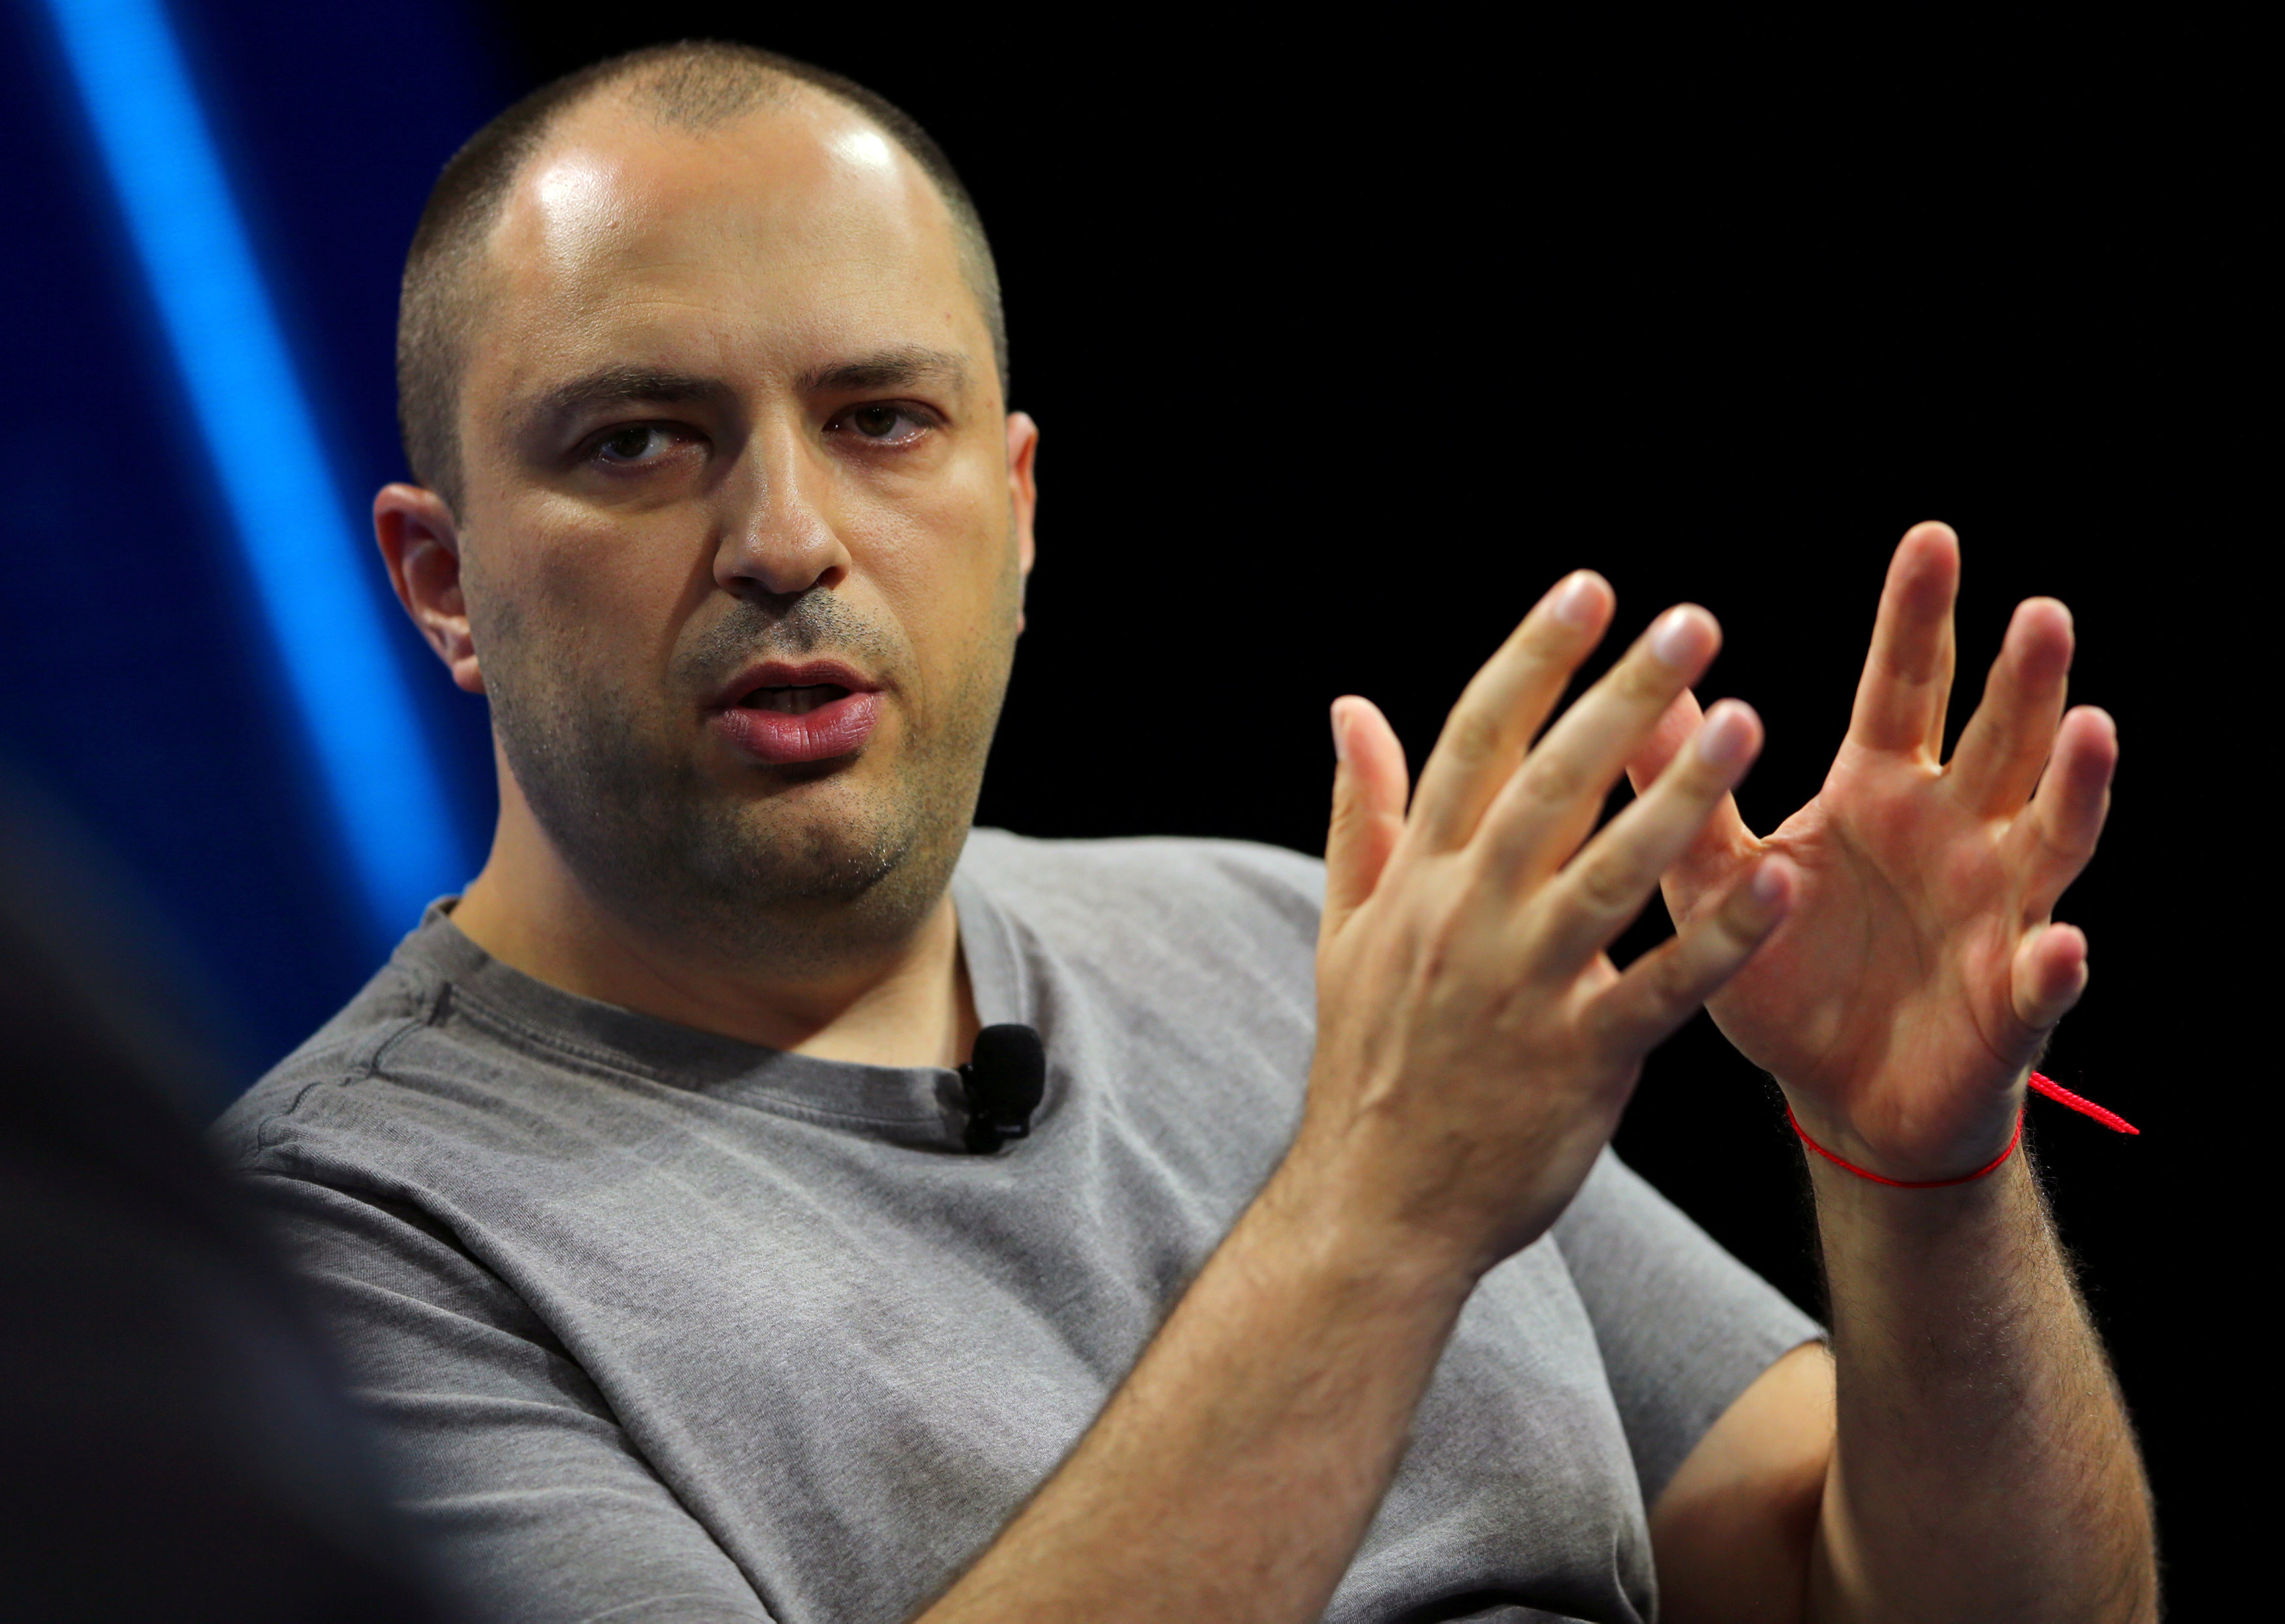 WhatsApp co-founder and privacy advocate at Facebook to quit